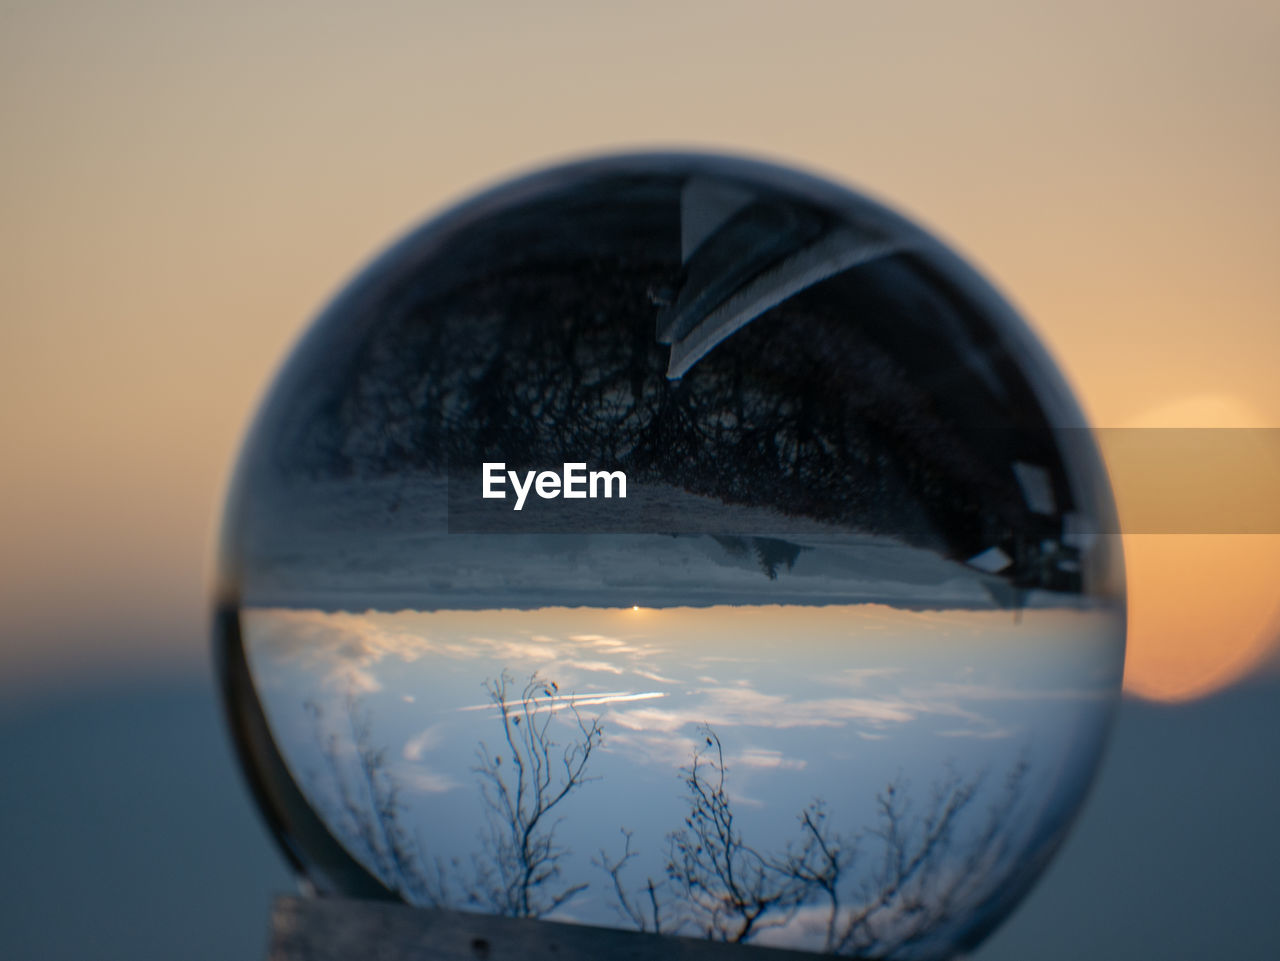 close-up, sunset, nature, reflection, transparent, glass - material, no people, sky, focus on foreground, sphere, orange color, still life, outdoors, scenics - nature, tree, beauty in nature, crystal ball, drink, refreshment, glass